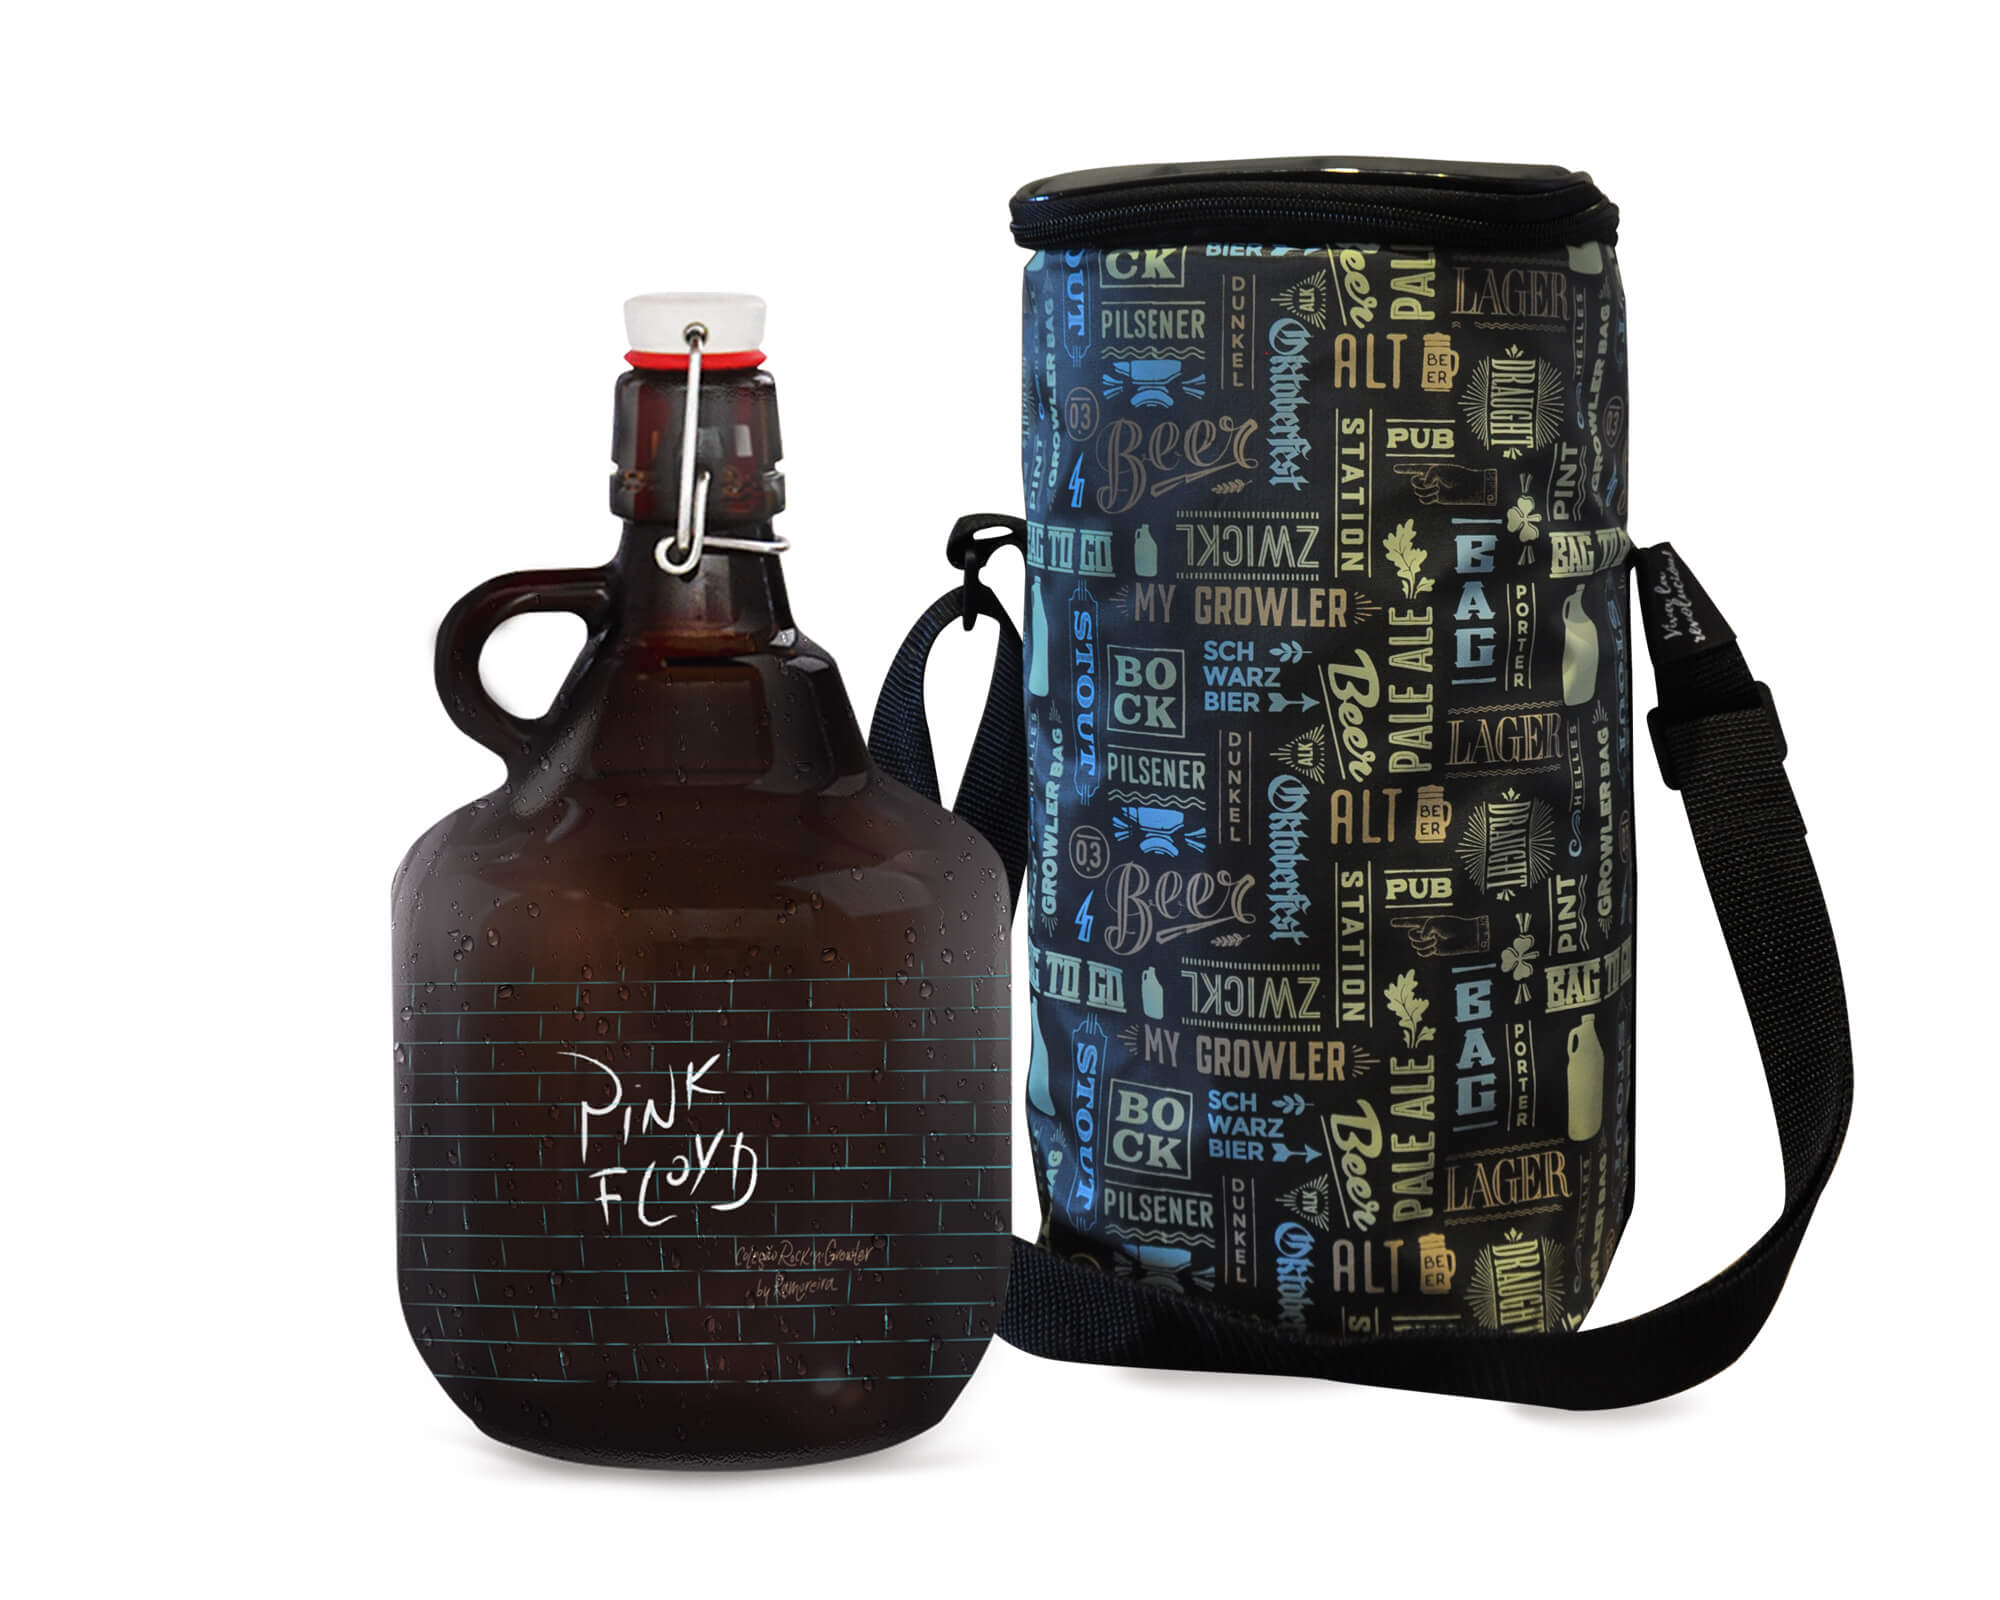 Kit Rock'n'Growler #6 - Grand Growler + Growler Bag To Go para 1 Growler